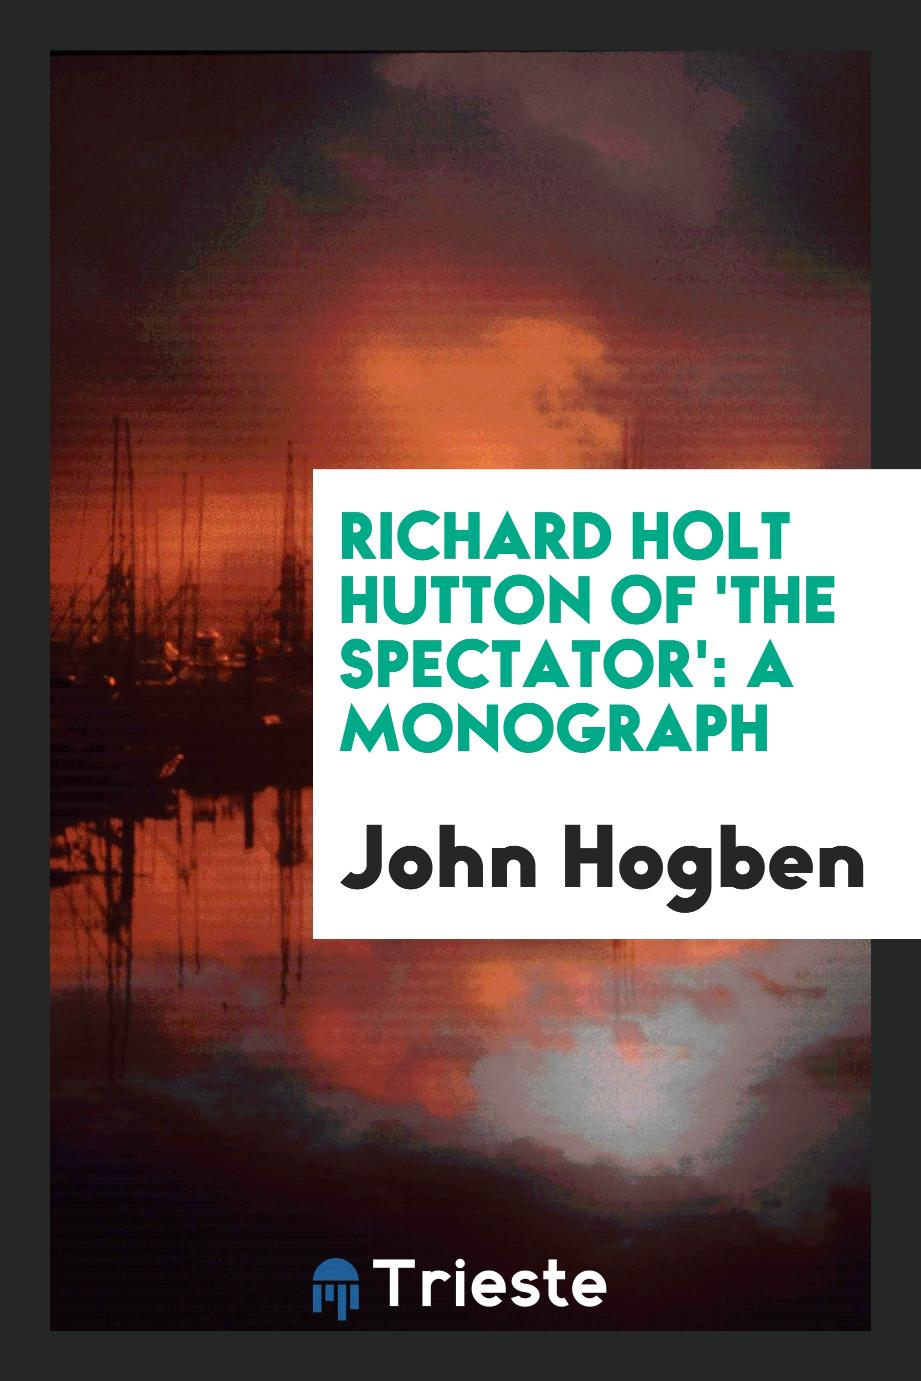 Richard Holt Hutton of 'The Spectator': A Monograph